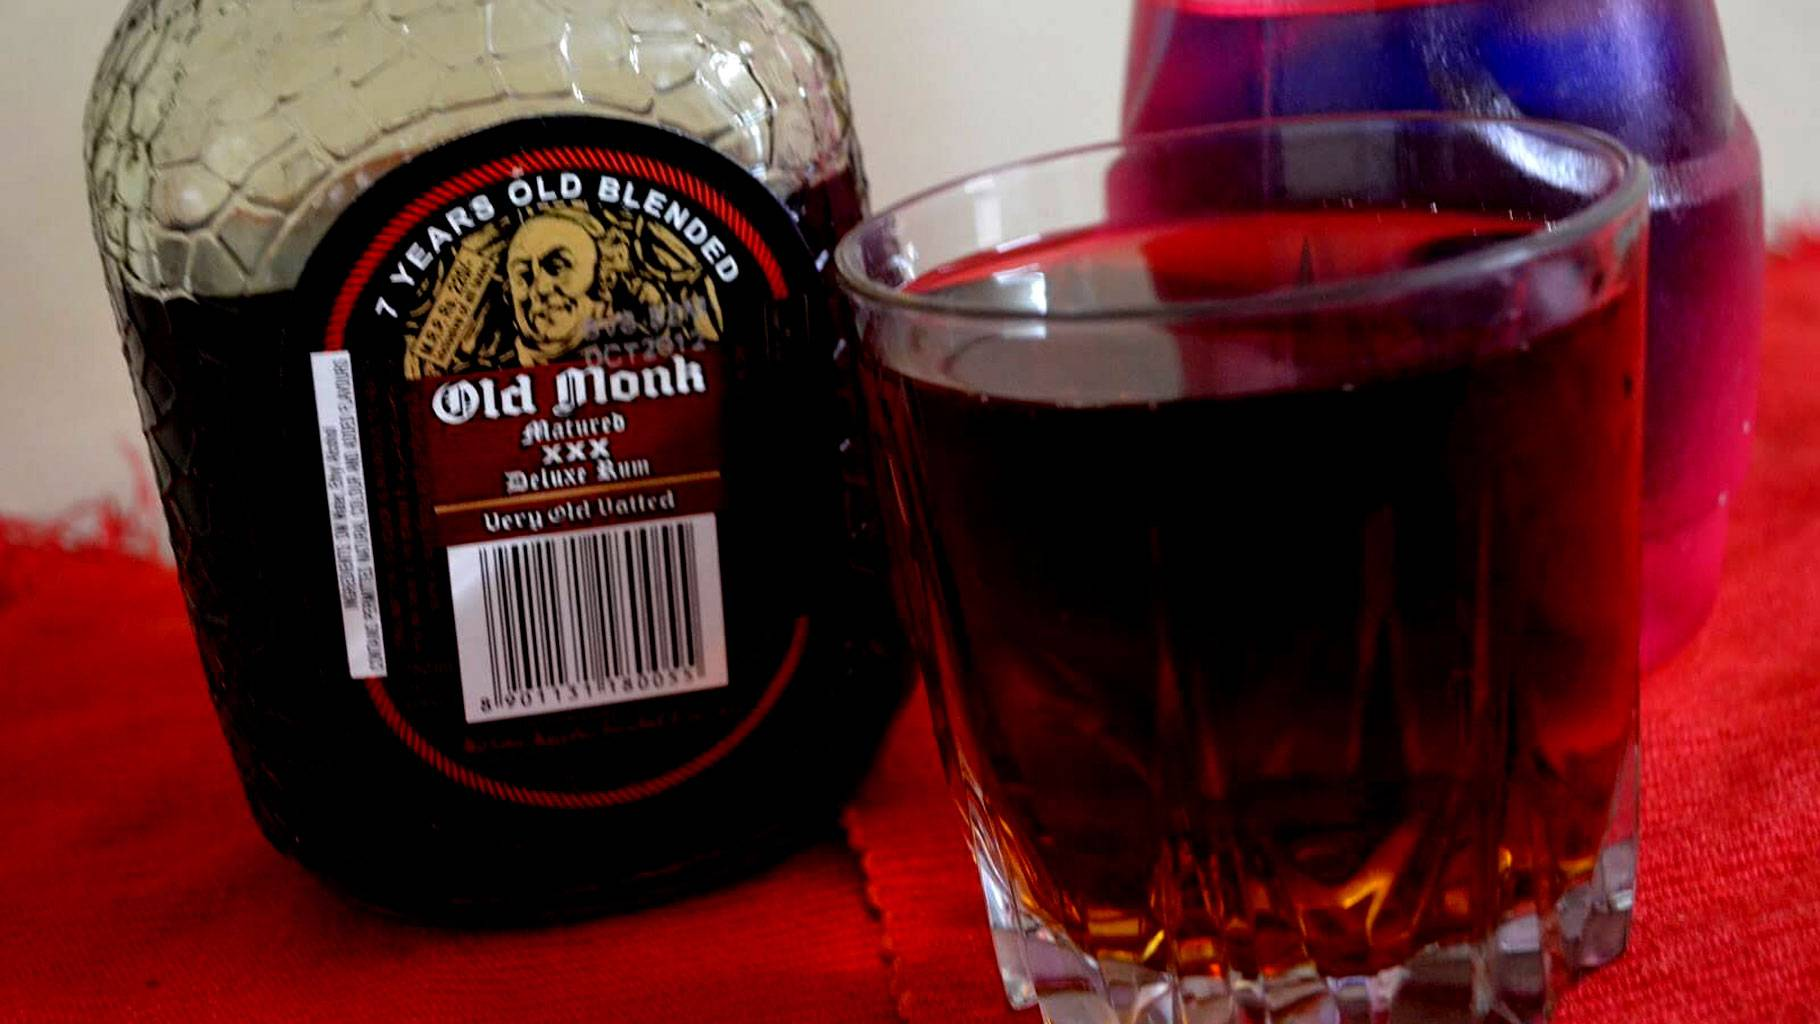 My 7 experiments with Old Monk, the rum for all seasons